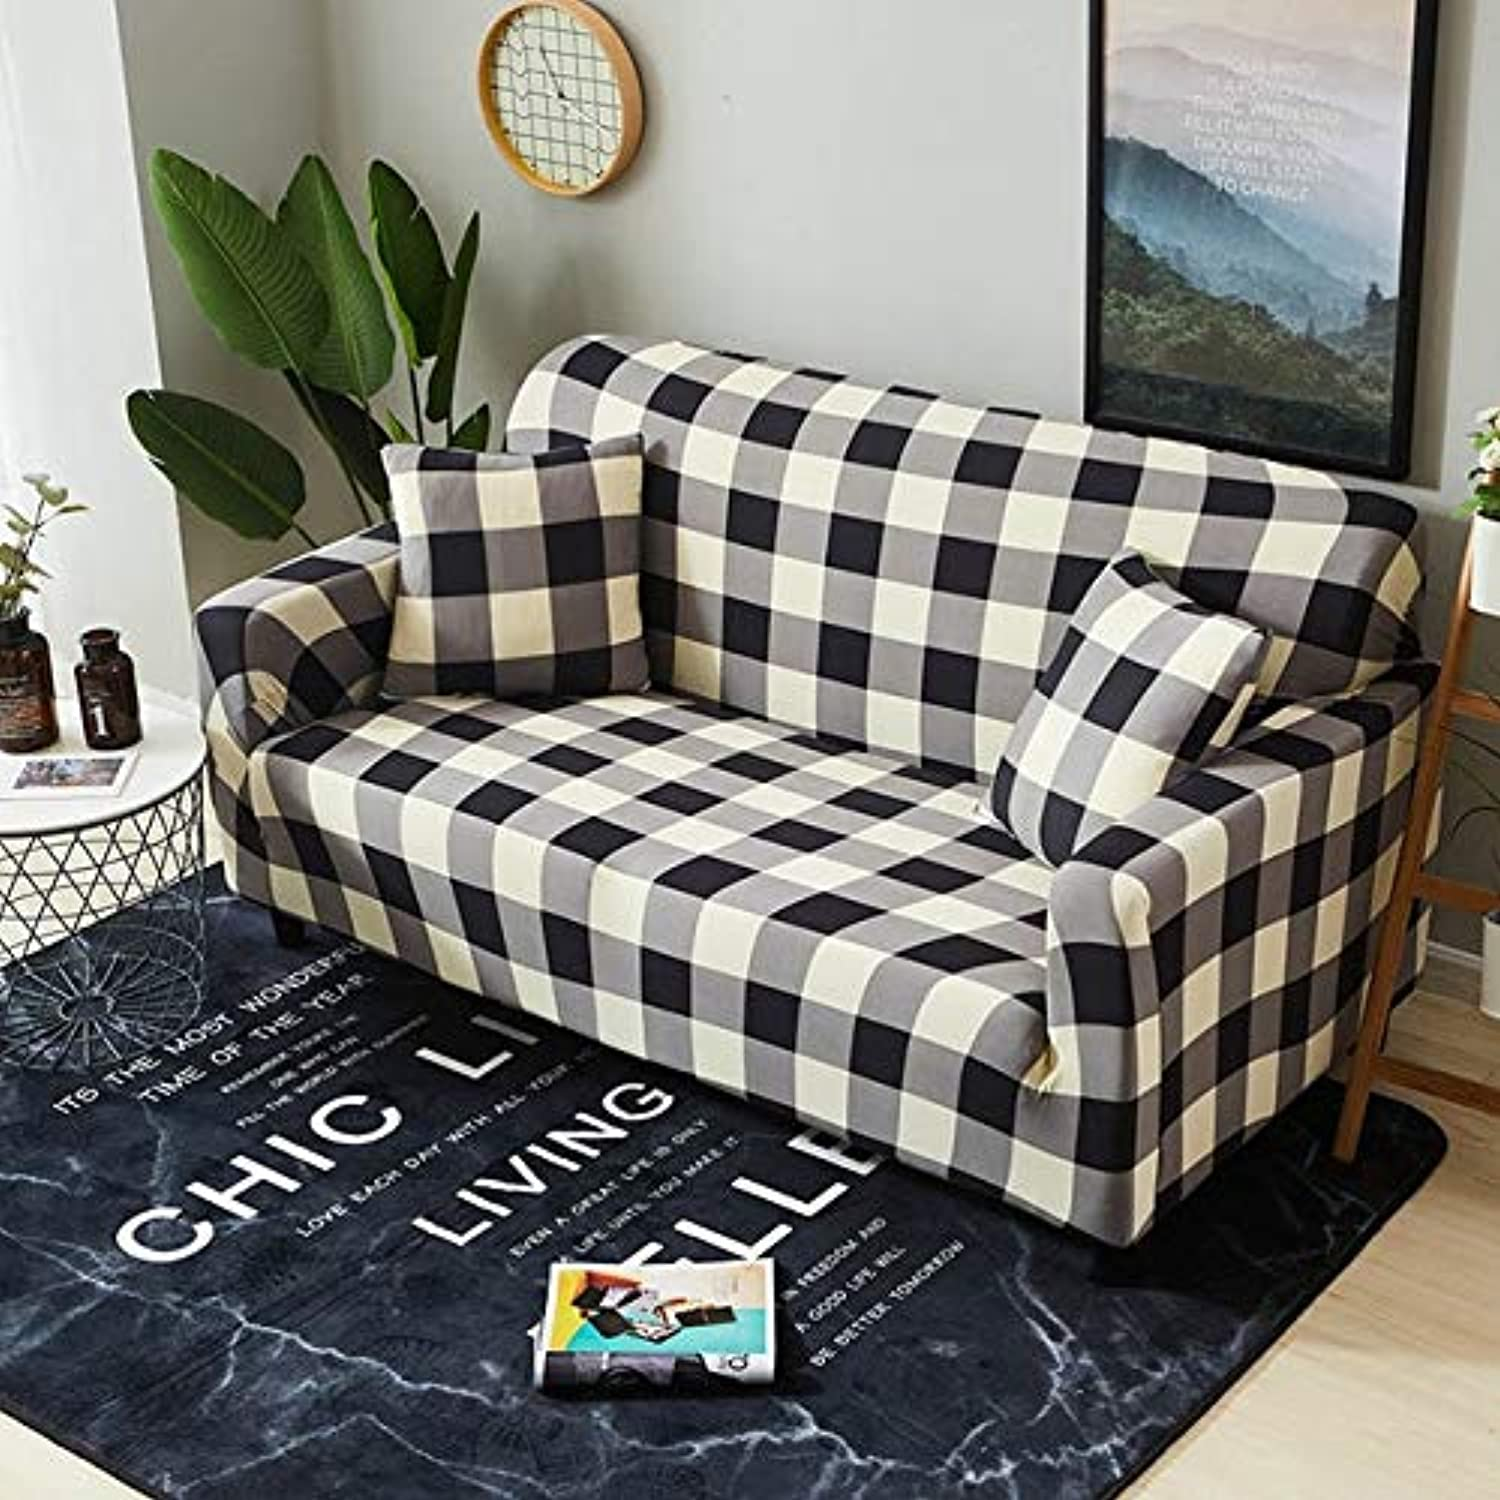 European Elegant Printing Sofa Cover Tight Wrap All-Inclusive Sectional Elastic Seat Couch Covers Slipcovers 1PC   color 12, 2seater 145-185cm